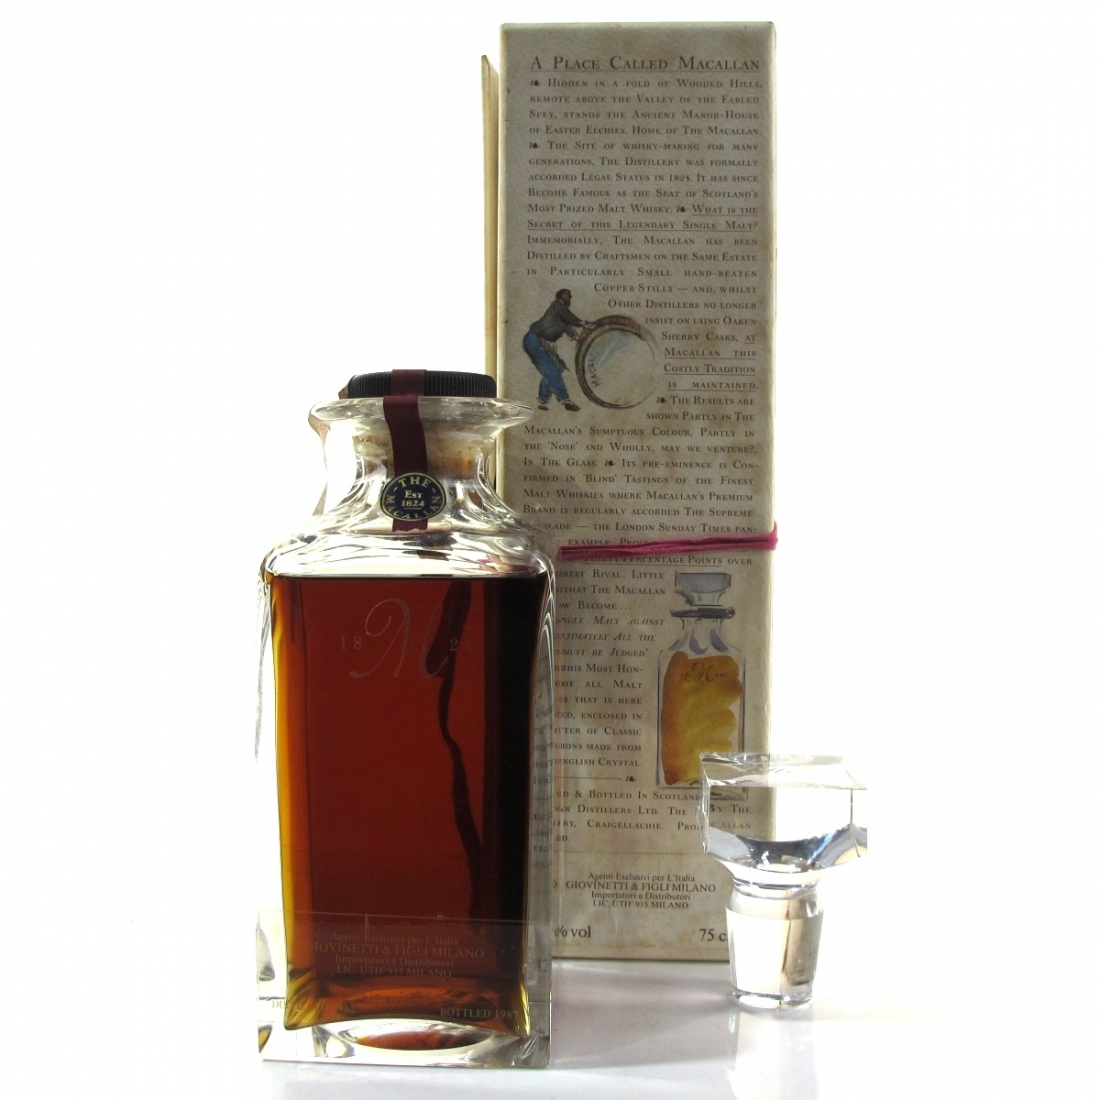 Macallan 25 Year Old Decanter